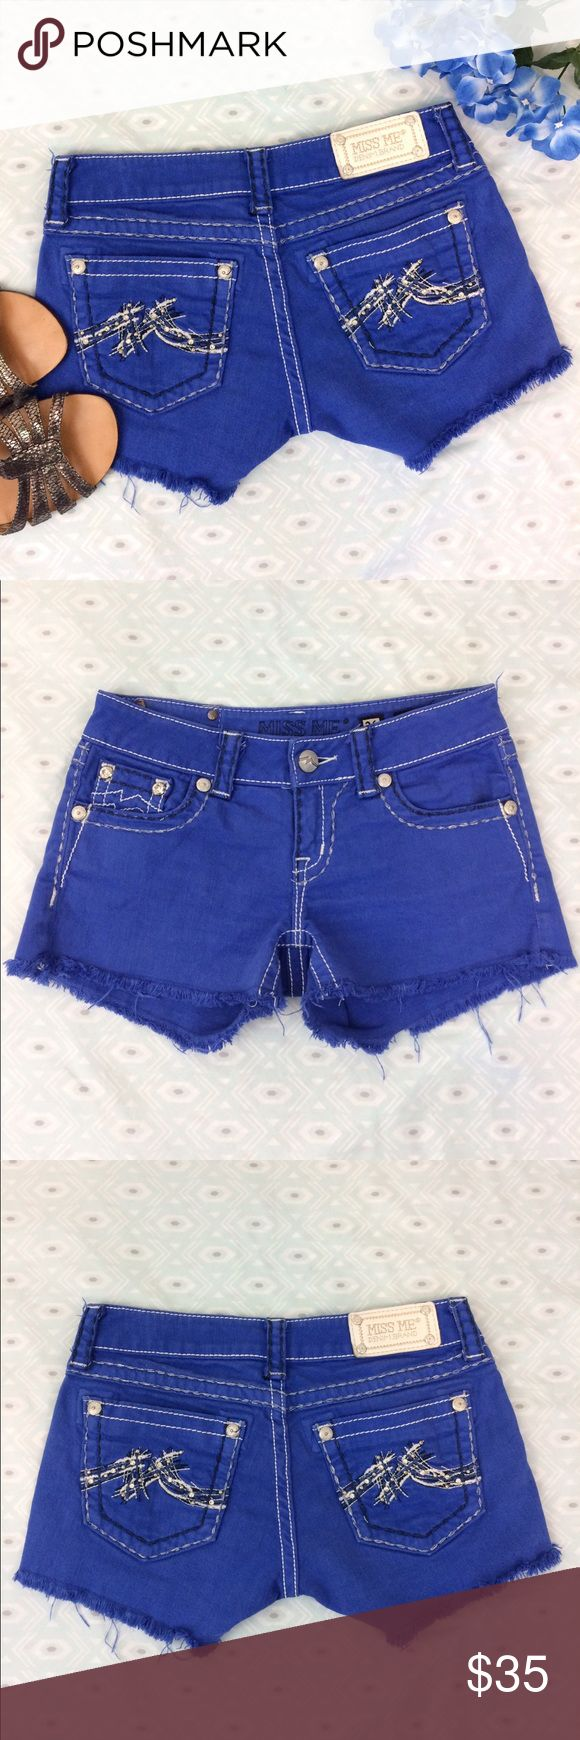 Miss Me | Royal Blue Denim Shorts • Miss Me blue shorts. • 98% cotton & 2% elastane. • Preloved. • Size 26. • {If you have any questions please ask before buying.} •Colors may vary slightly from pictures• Miss Me Shorts